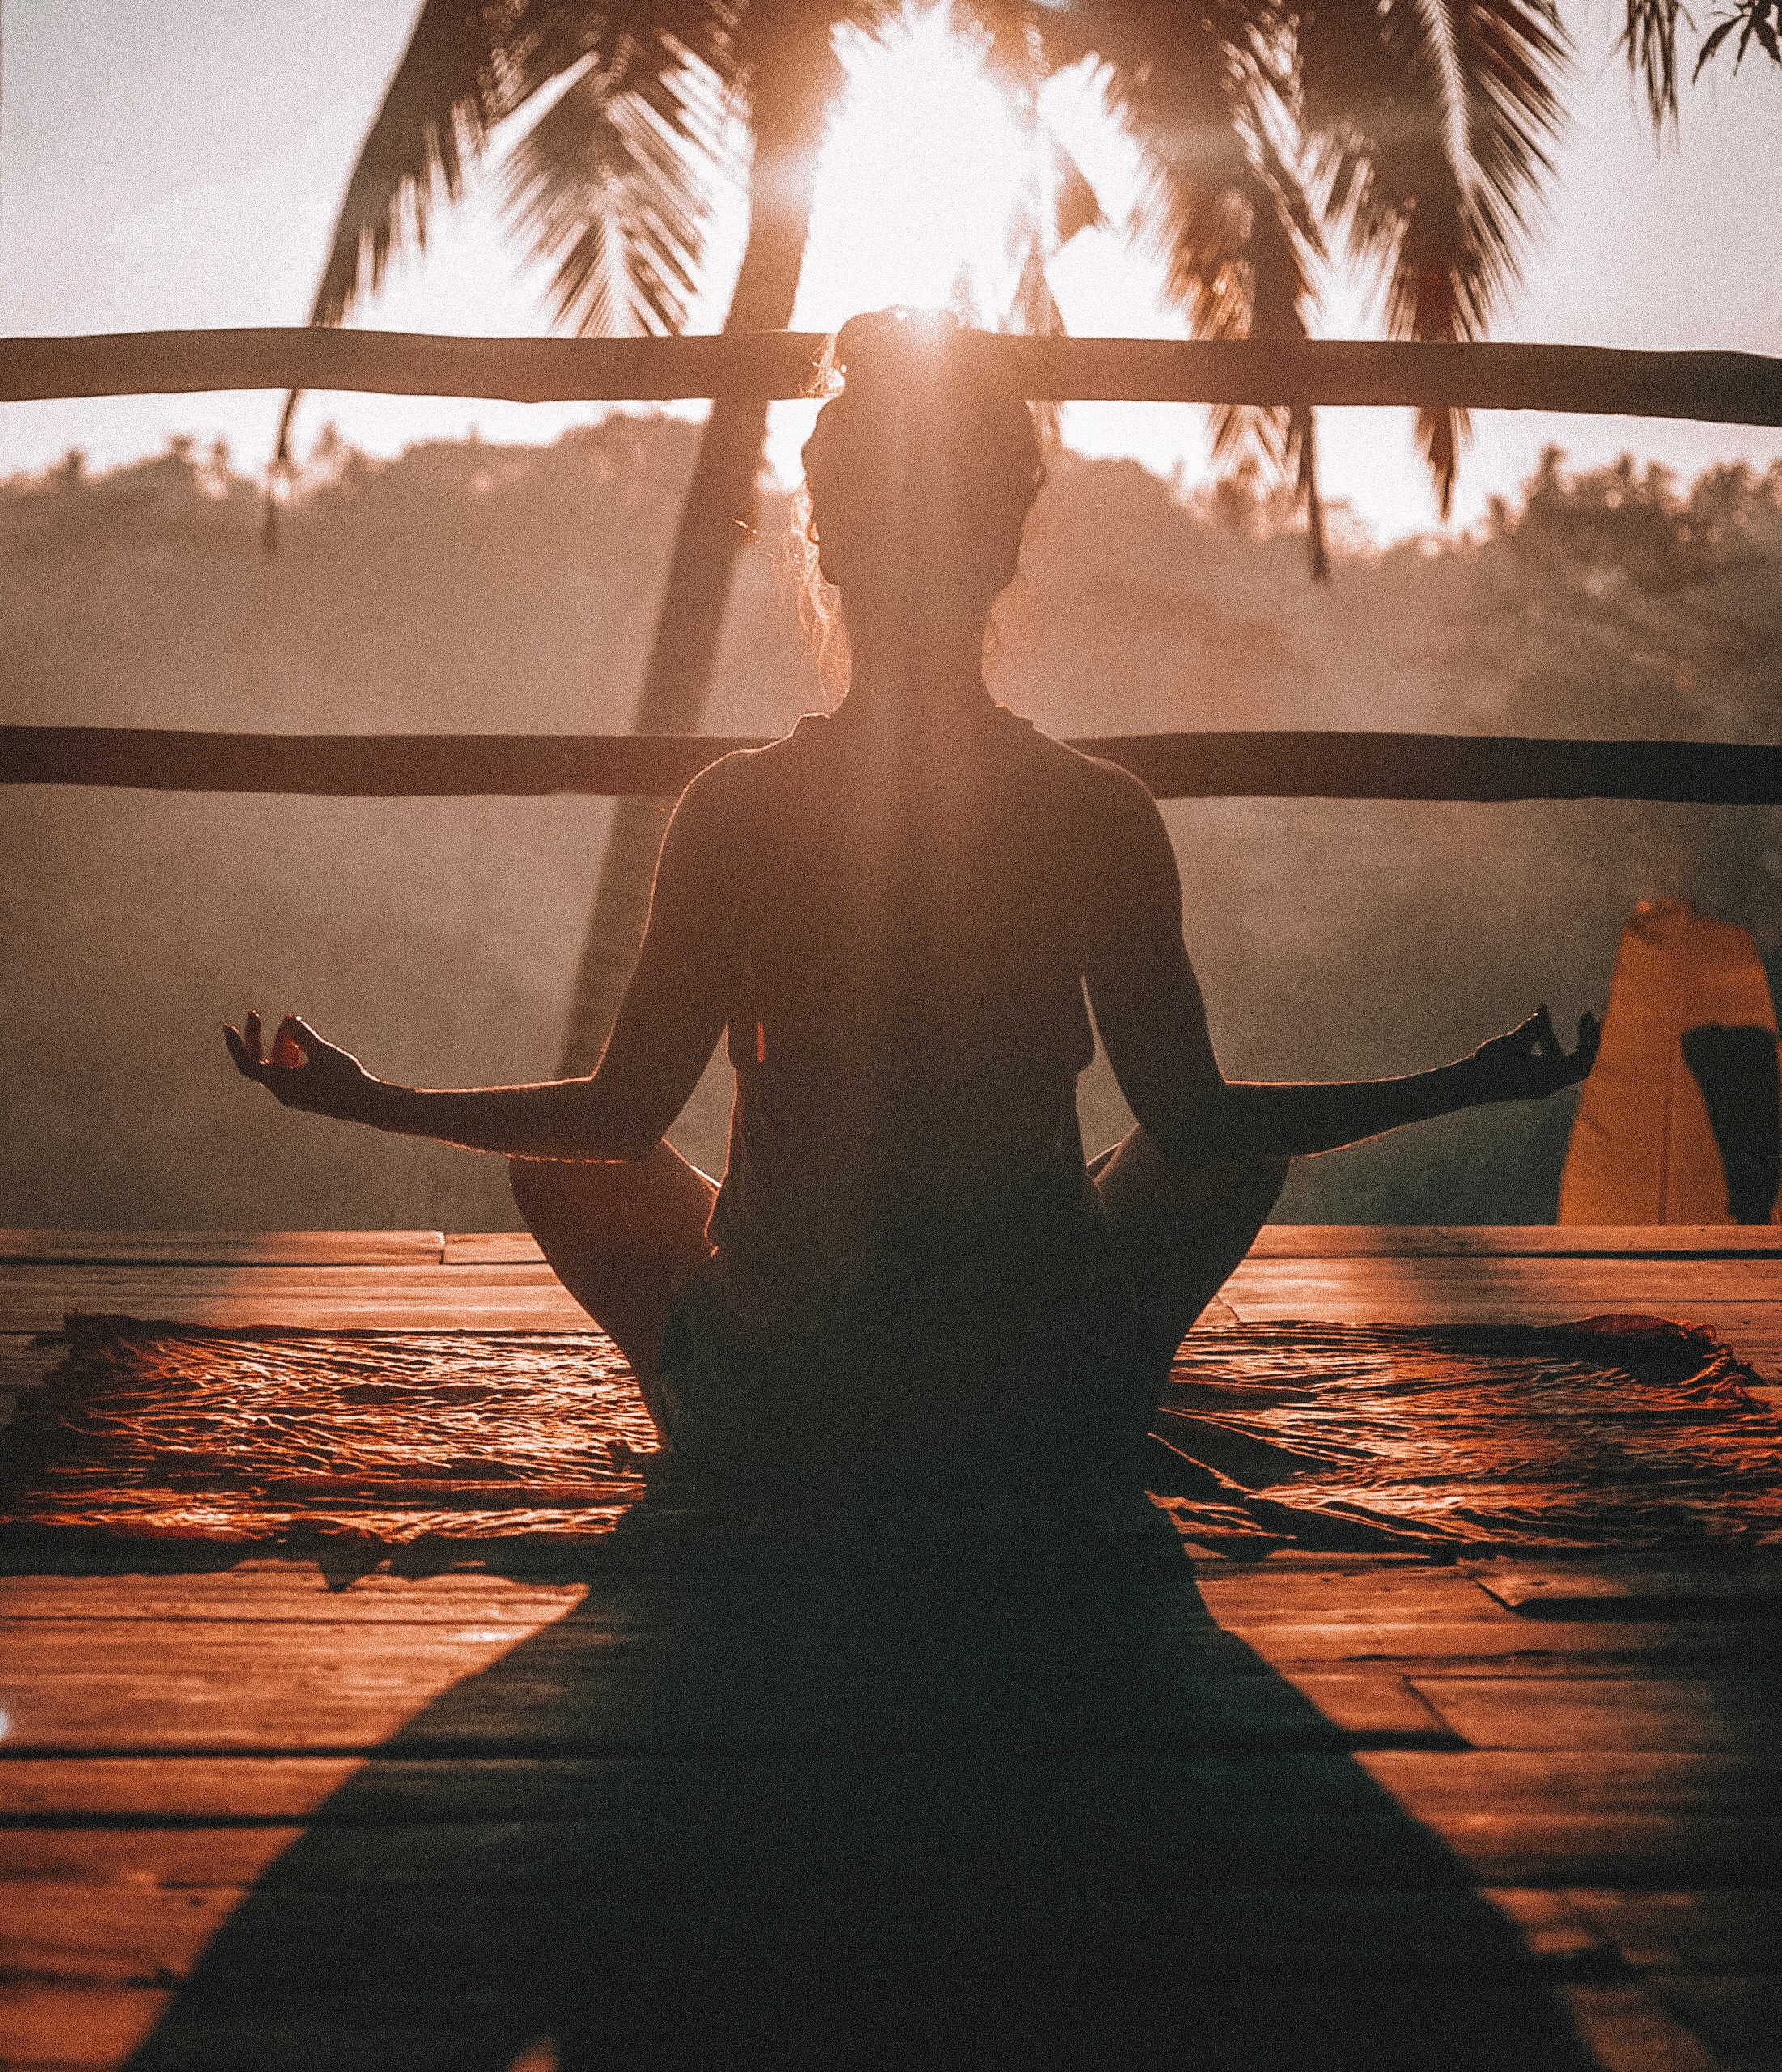 Woman meditating with palm tree and sun in the background